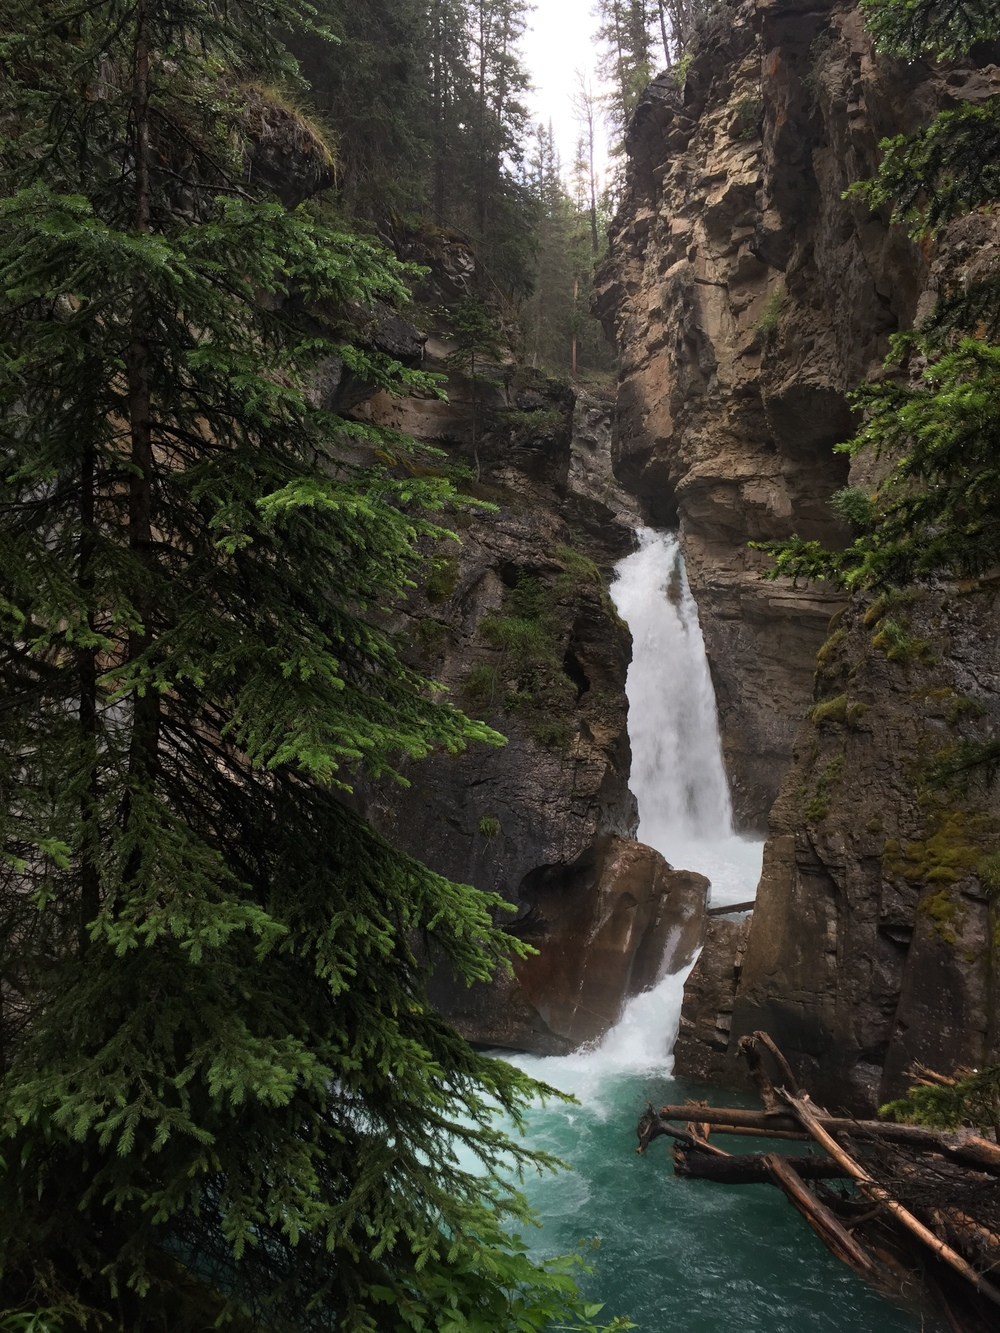 Lower Falls in Johnston Canyon, Banff National Park - iPhone image